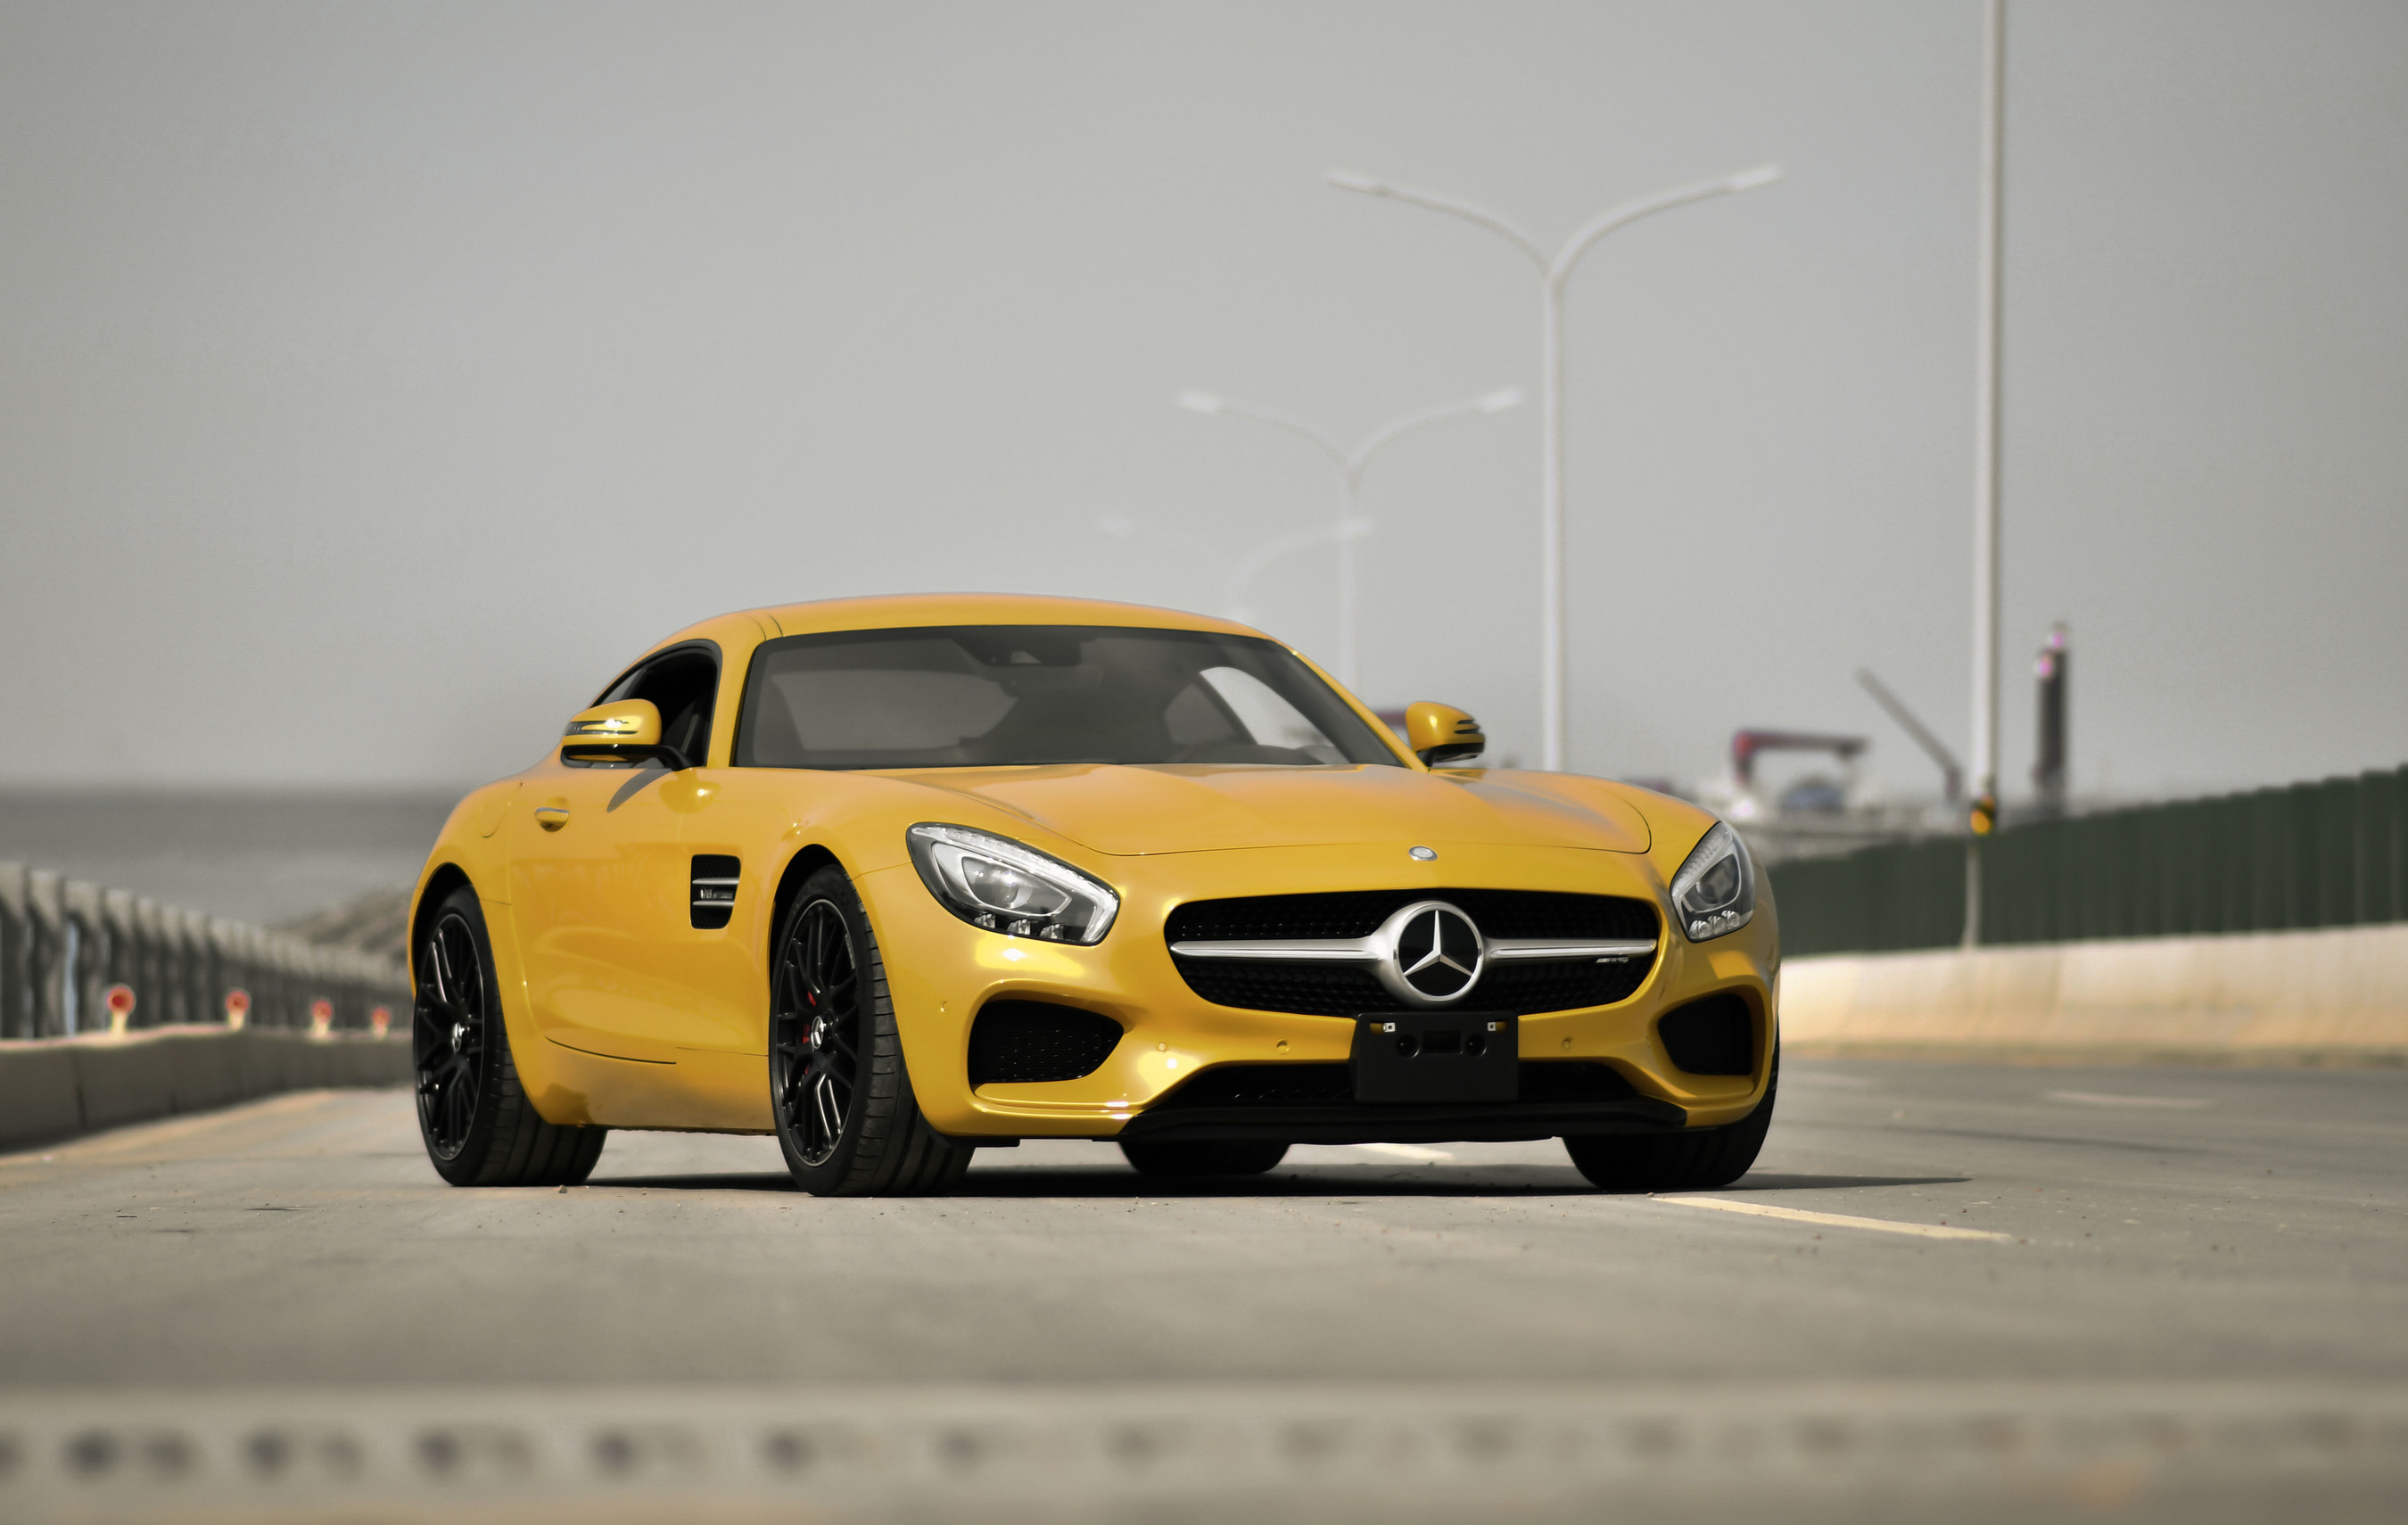 Hertz Celebrates German Performance With Curated Rental